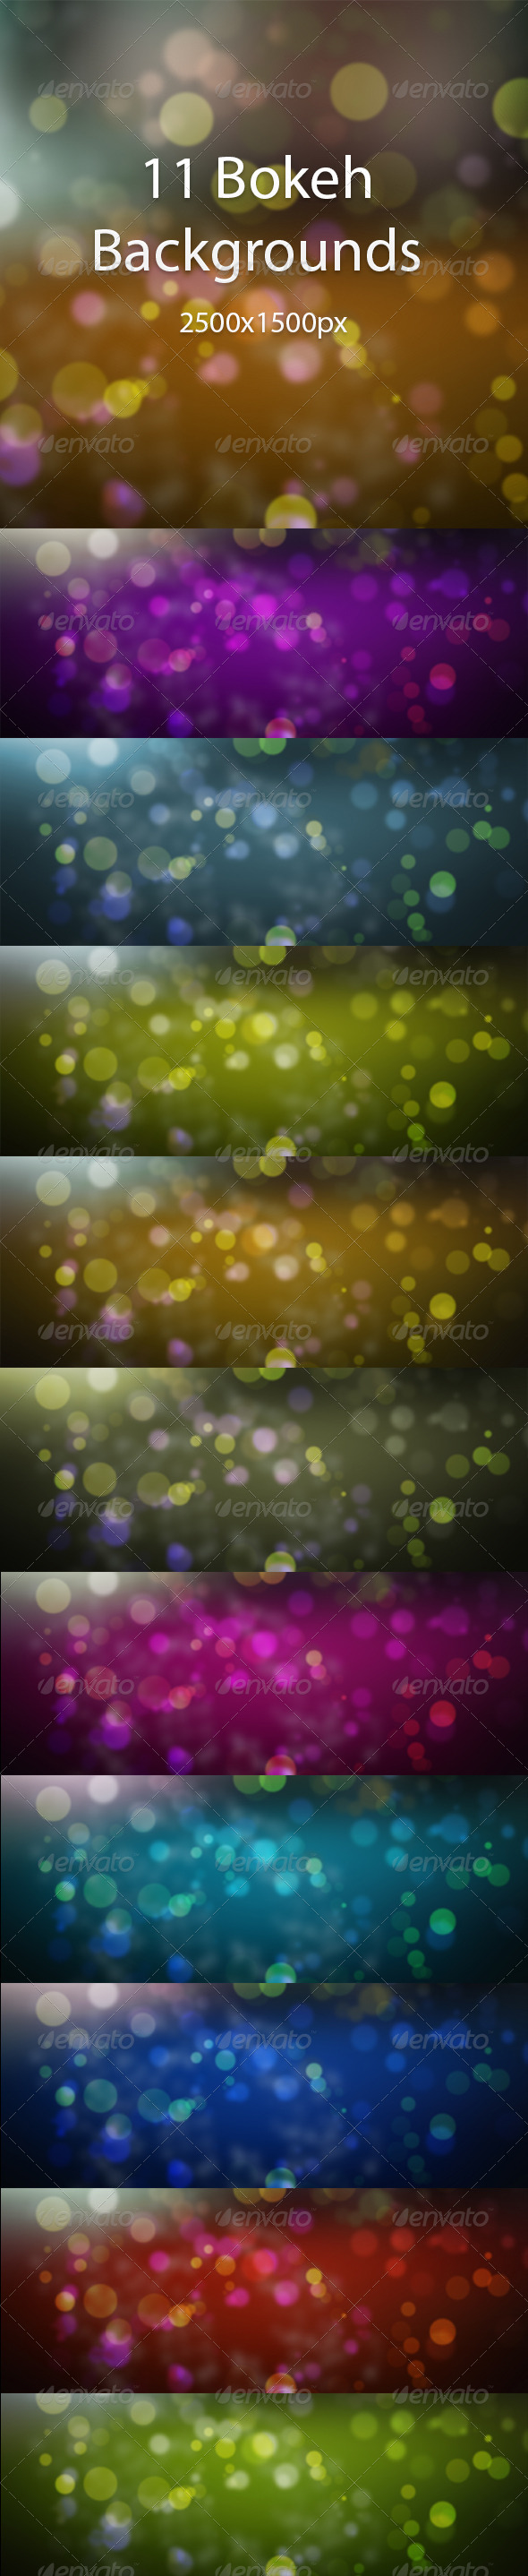 Bokeh Background Pack  - Backgrounds Graphics